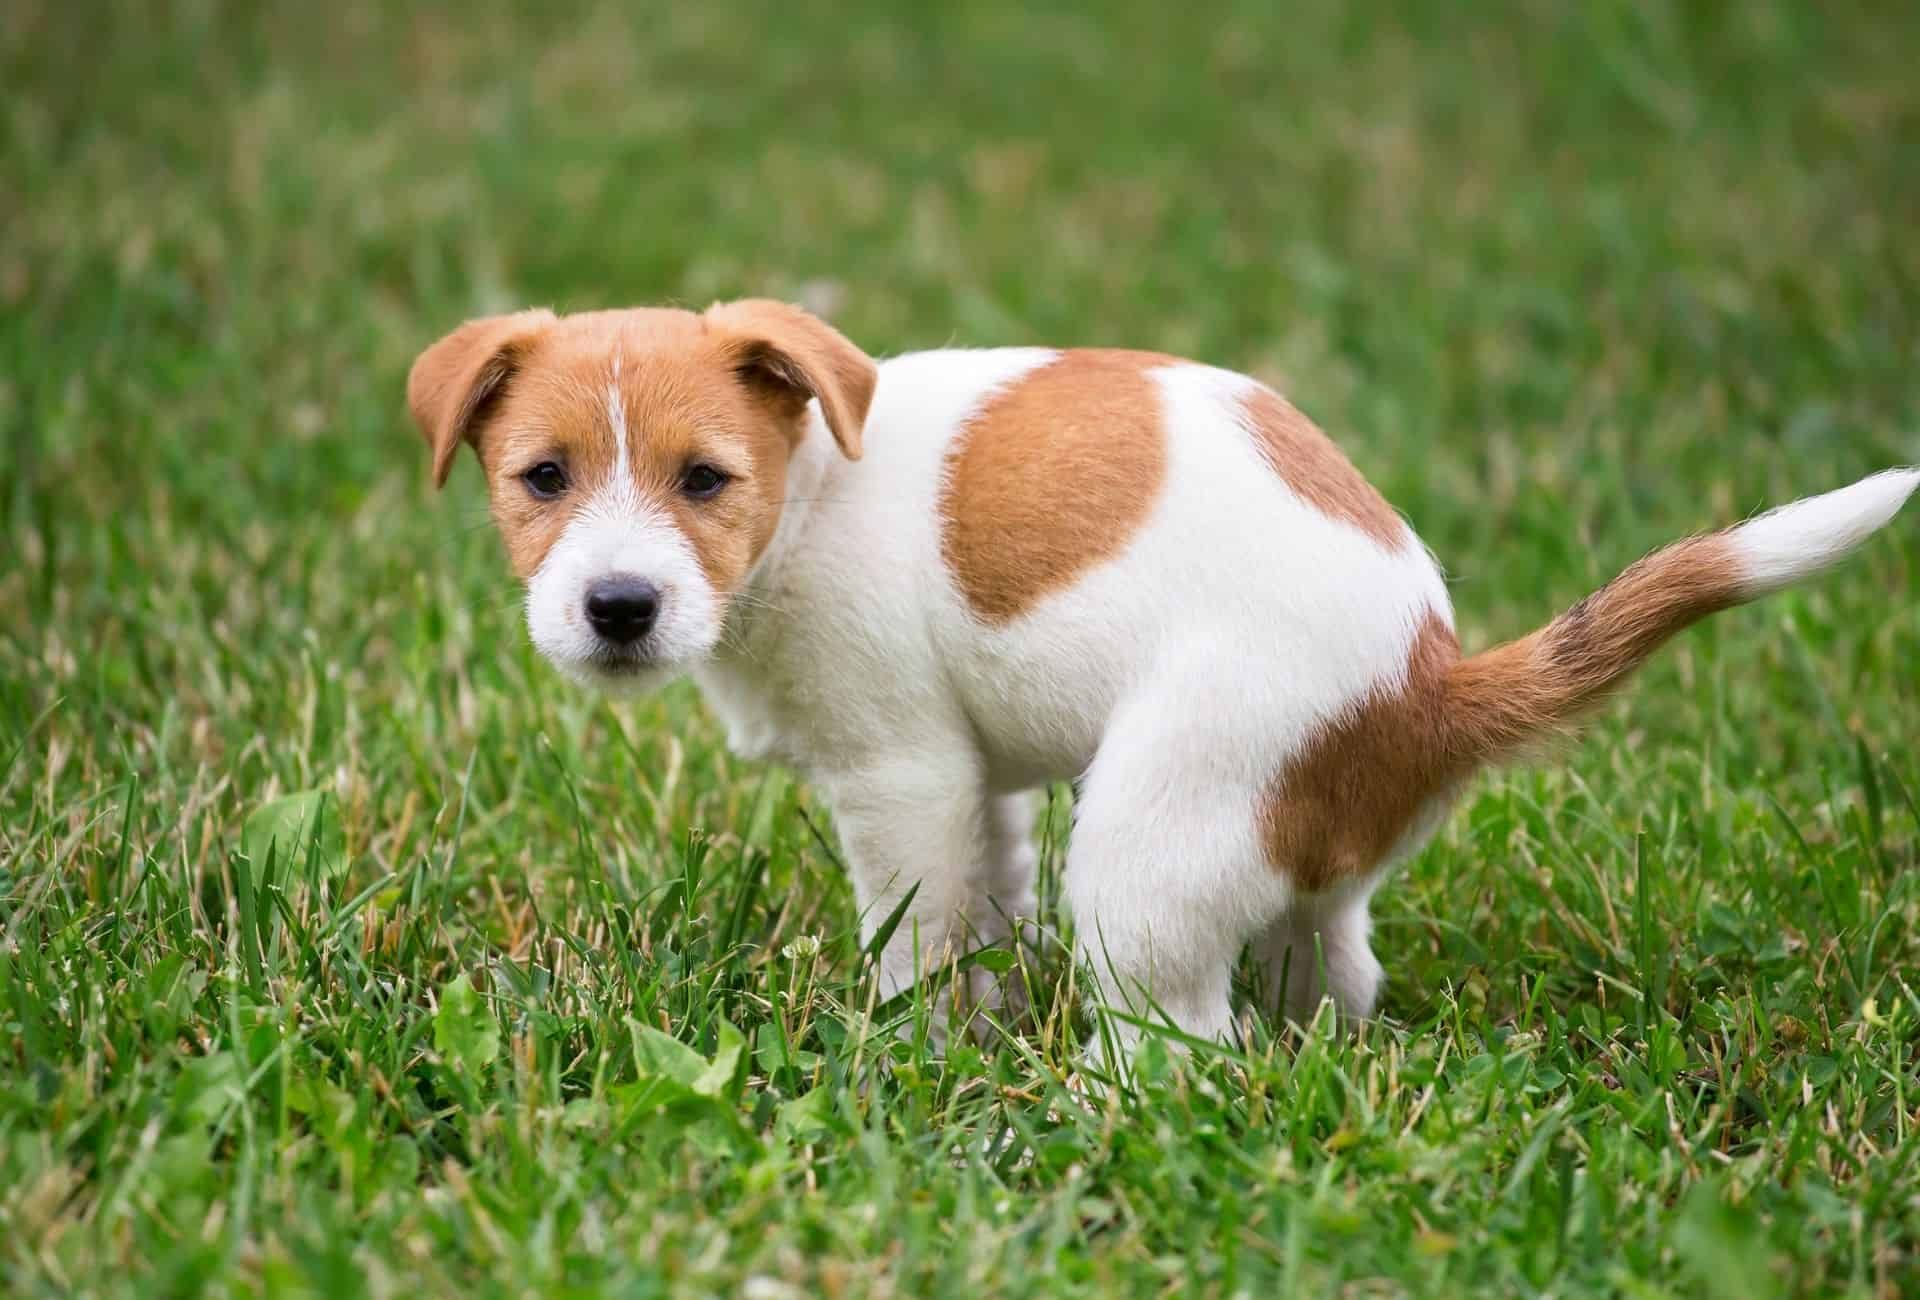 Puppy is about to scoot over the grass to possibly alleviate his itchy rear end.